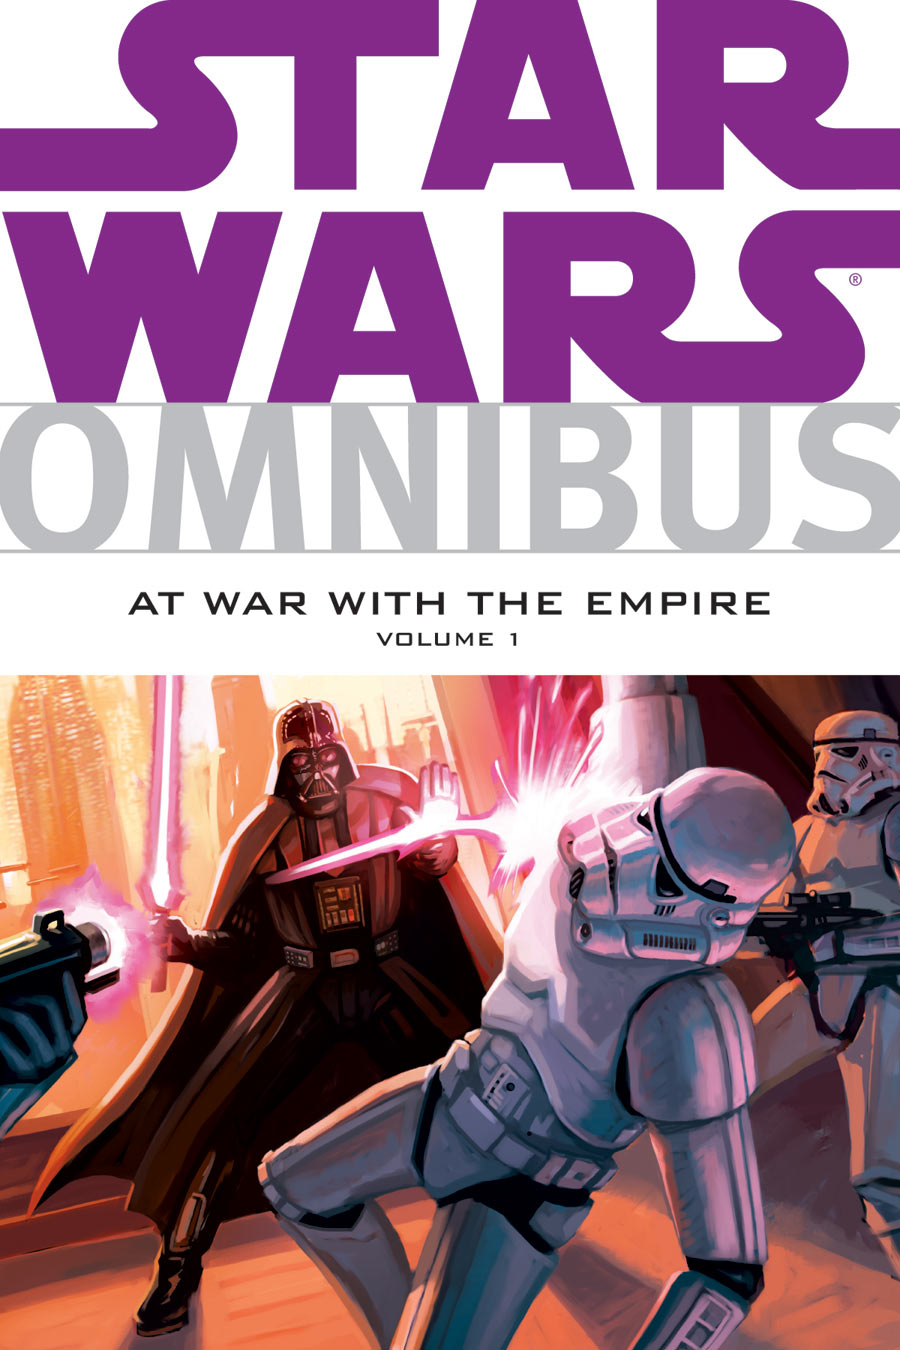 Star Wars Omnibus: At War with the Empire Volume 1   Wookieepedia   FANDOM powered by Wikia